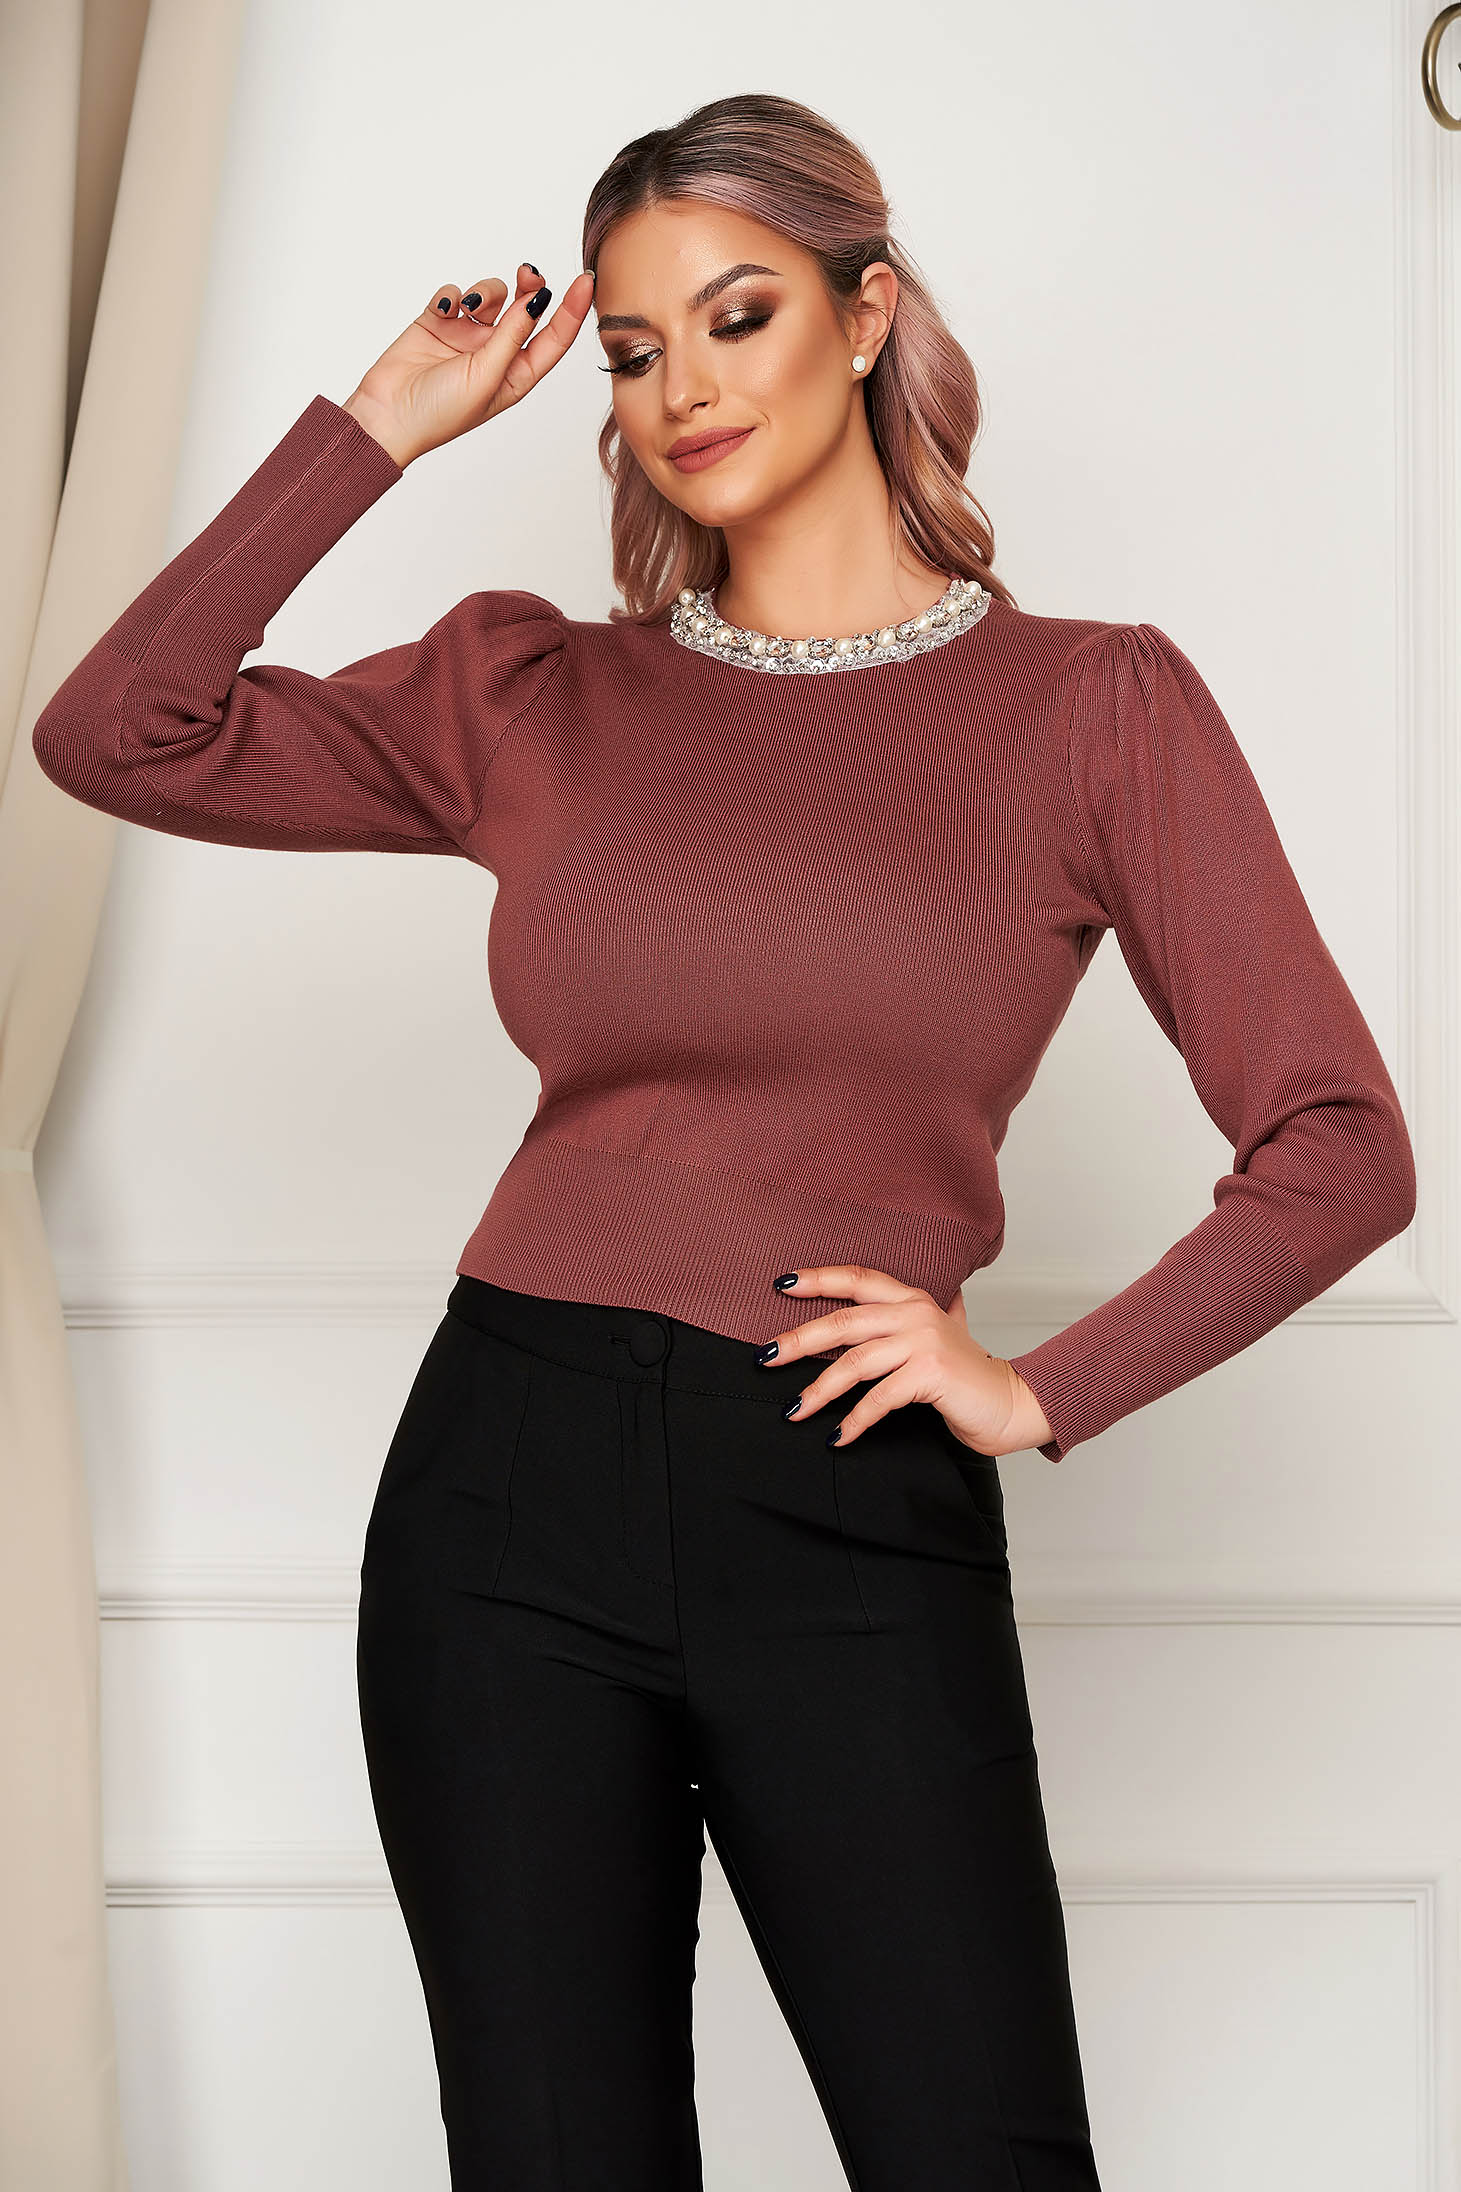 Lightpink sweater elegant knitted with tented cut high shoulders